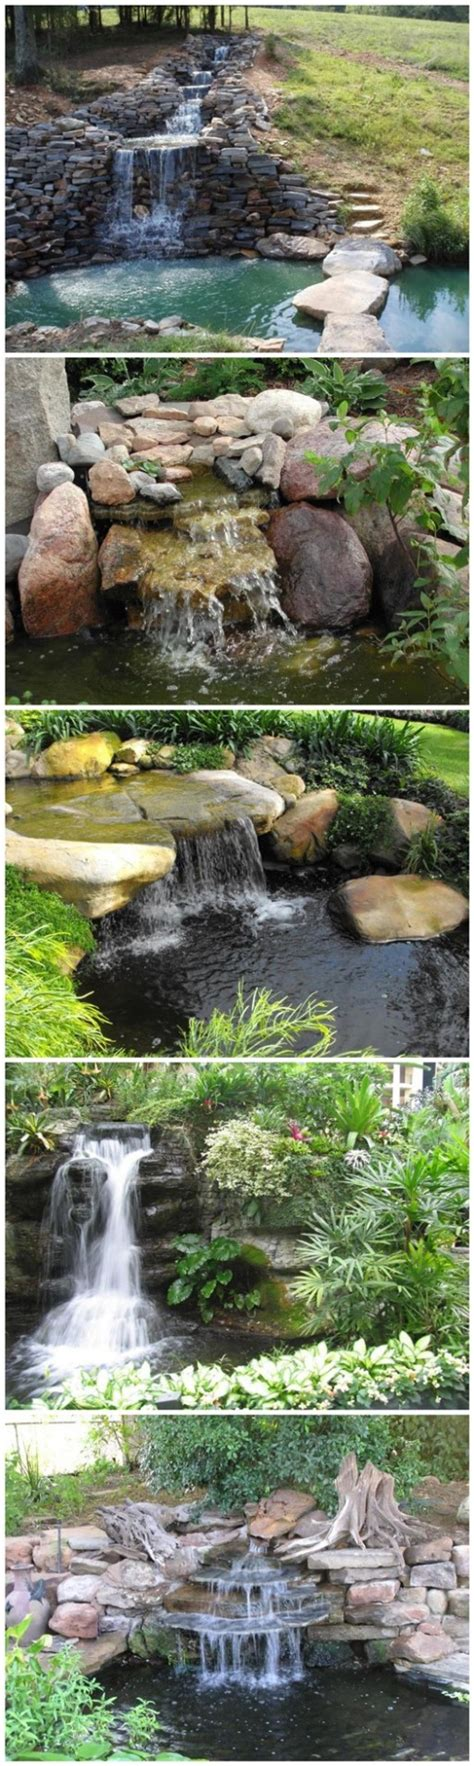 How To Build A Backyard Pond And Waterfall by How To Build A Garden Waterfall Pond Diy Tag